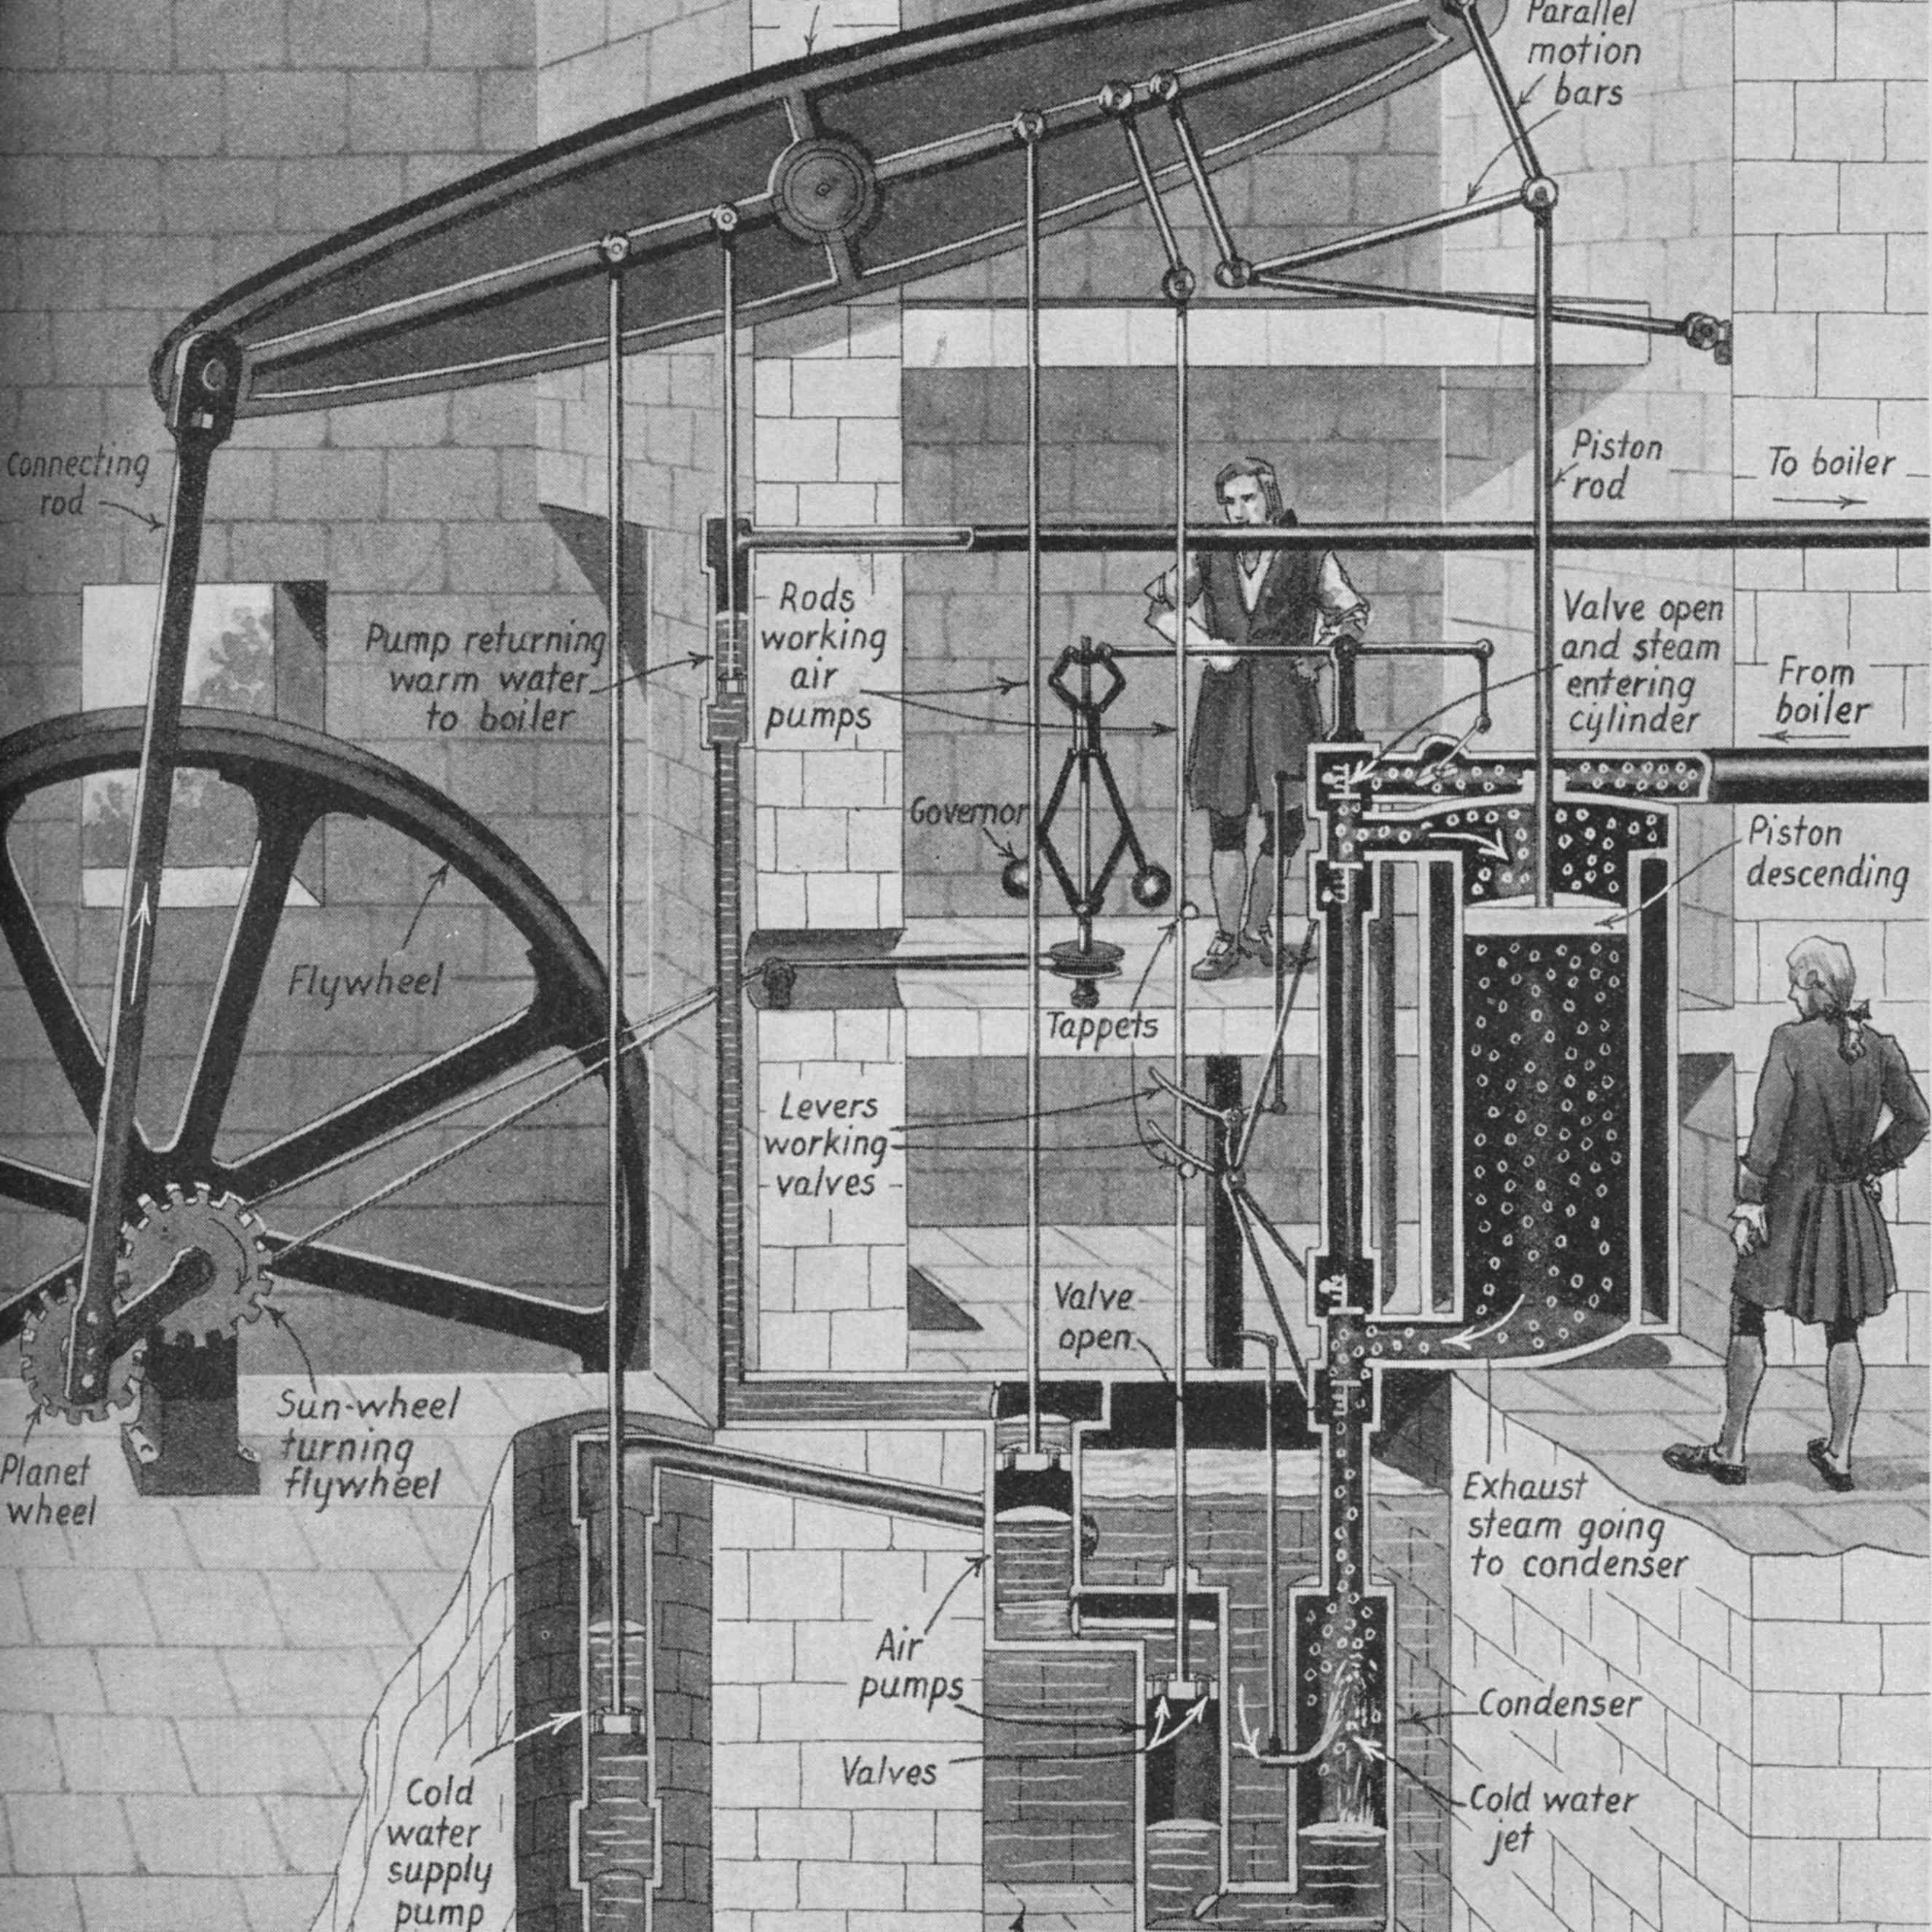 Illustration showing James Watt's (1736-1819) revolutionary invention with explanatory diagram of its functioning.